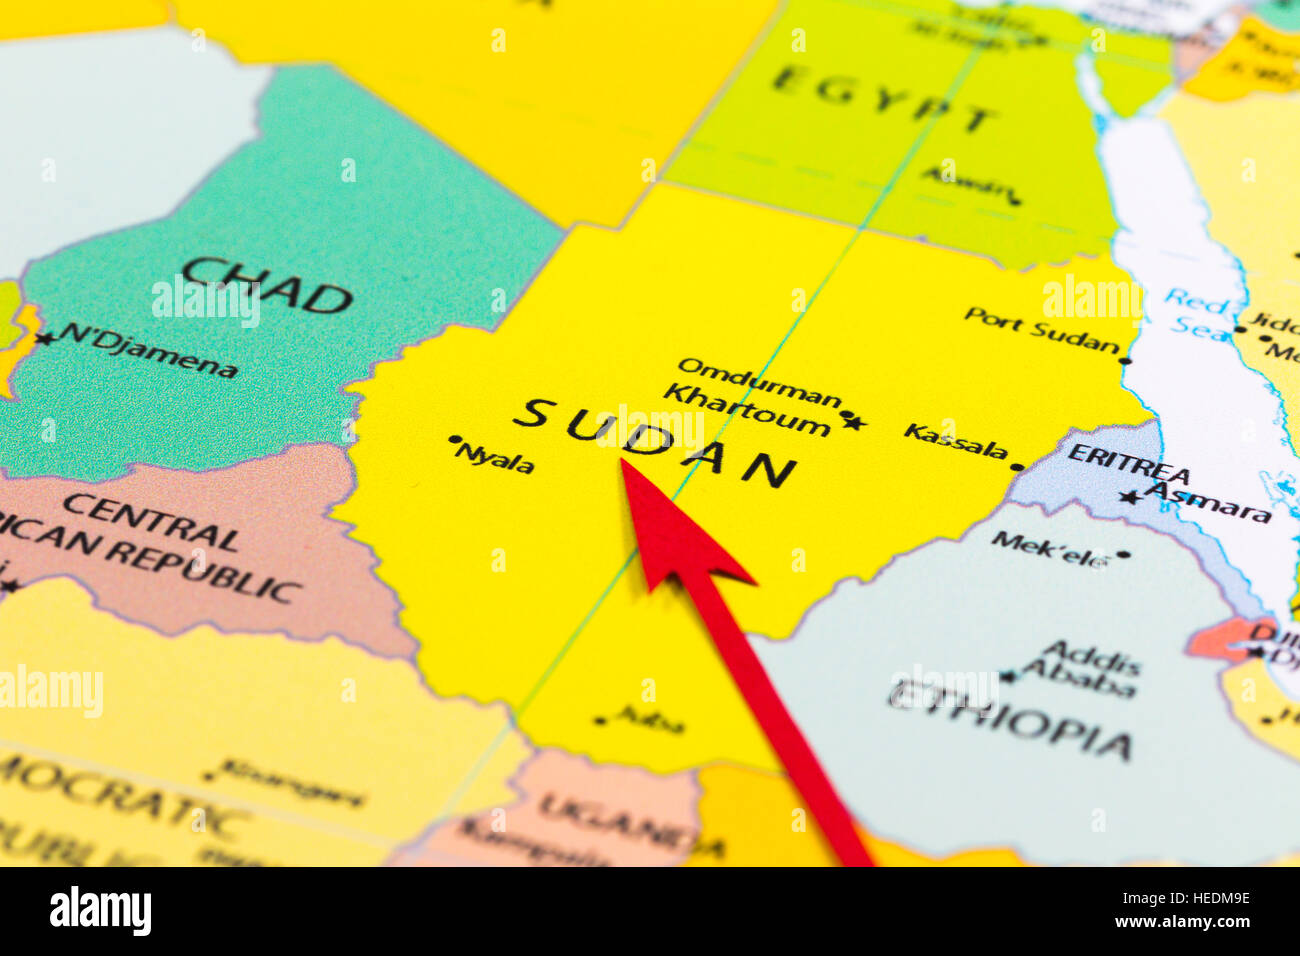 Map Sudan Stock Photos & Map Sudan Stock Images - Alamy on tunis map, sudan historical map, sudan nile map, lagos map, auckland new zealand map, user khartoum sudan map, kabul map, khartoum state map, south sudan on a world map, khartoum africa map,